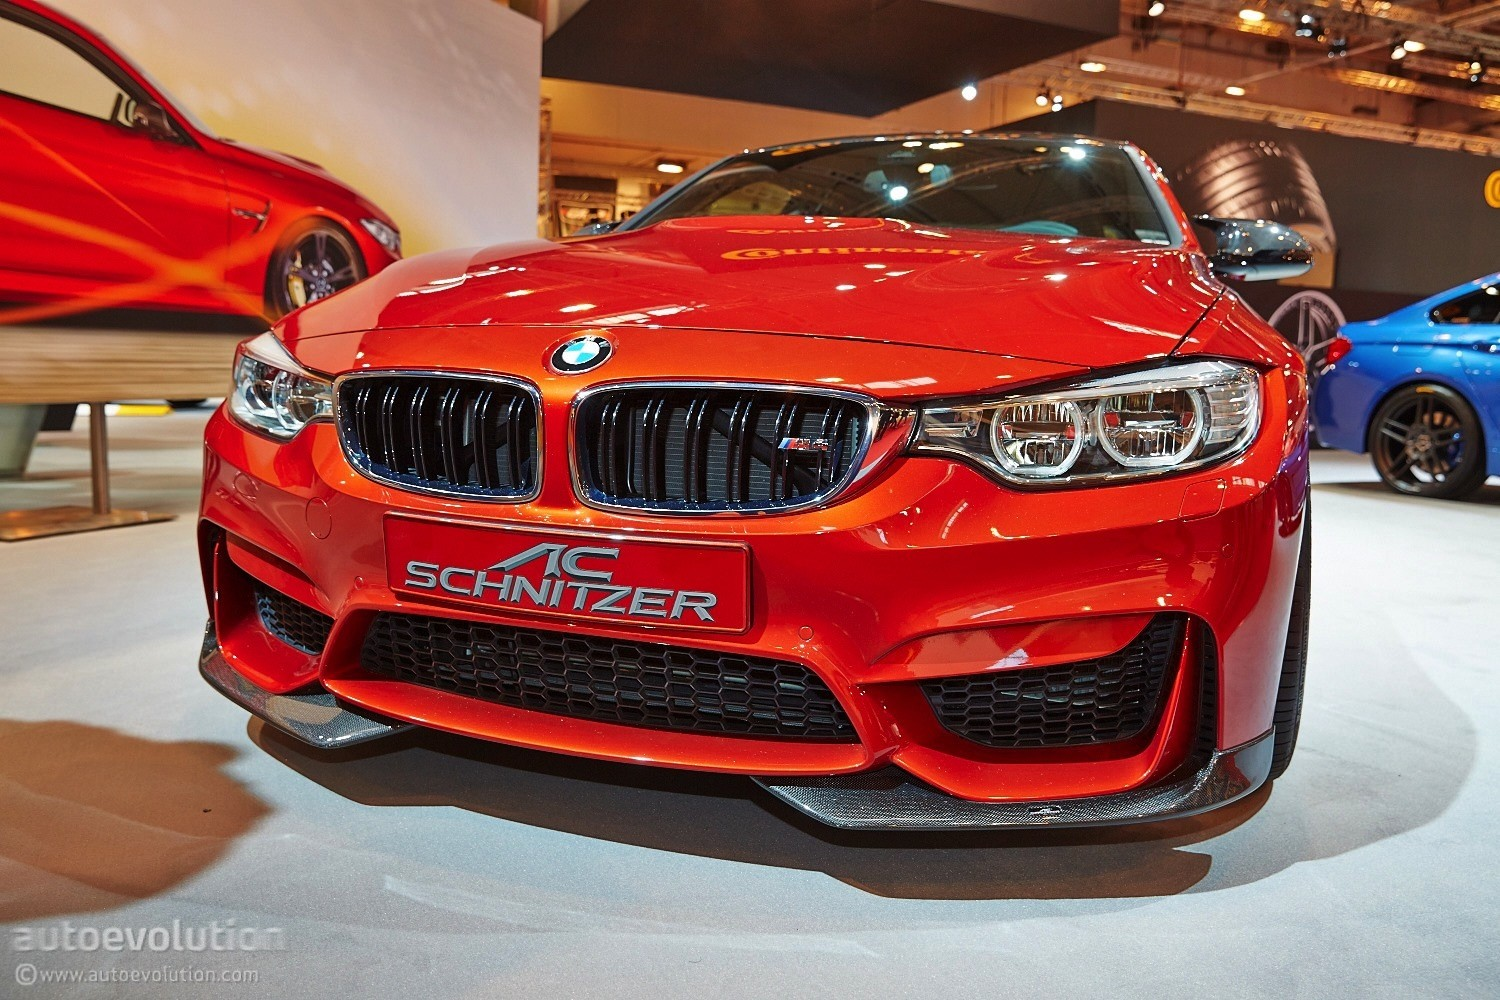 Ac schnitzer unveils bmw m4 with a wing on its boot at the Wing motors automobiles